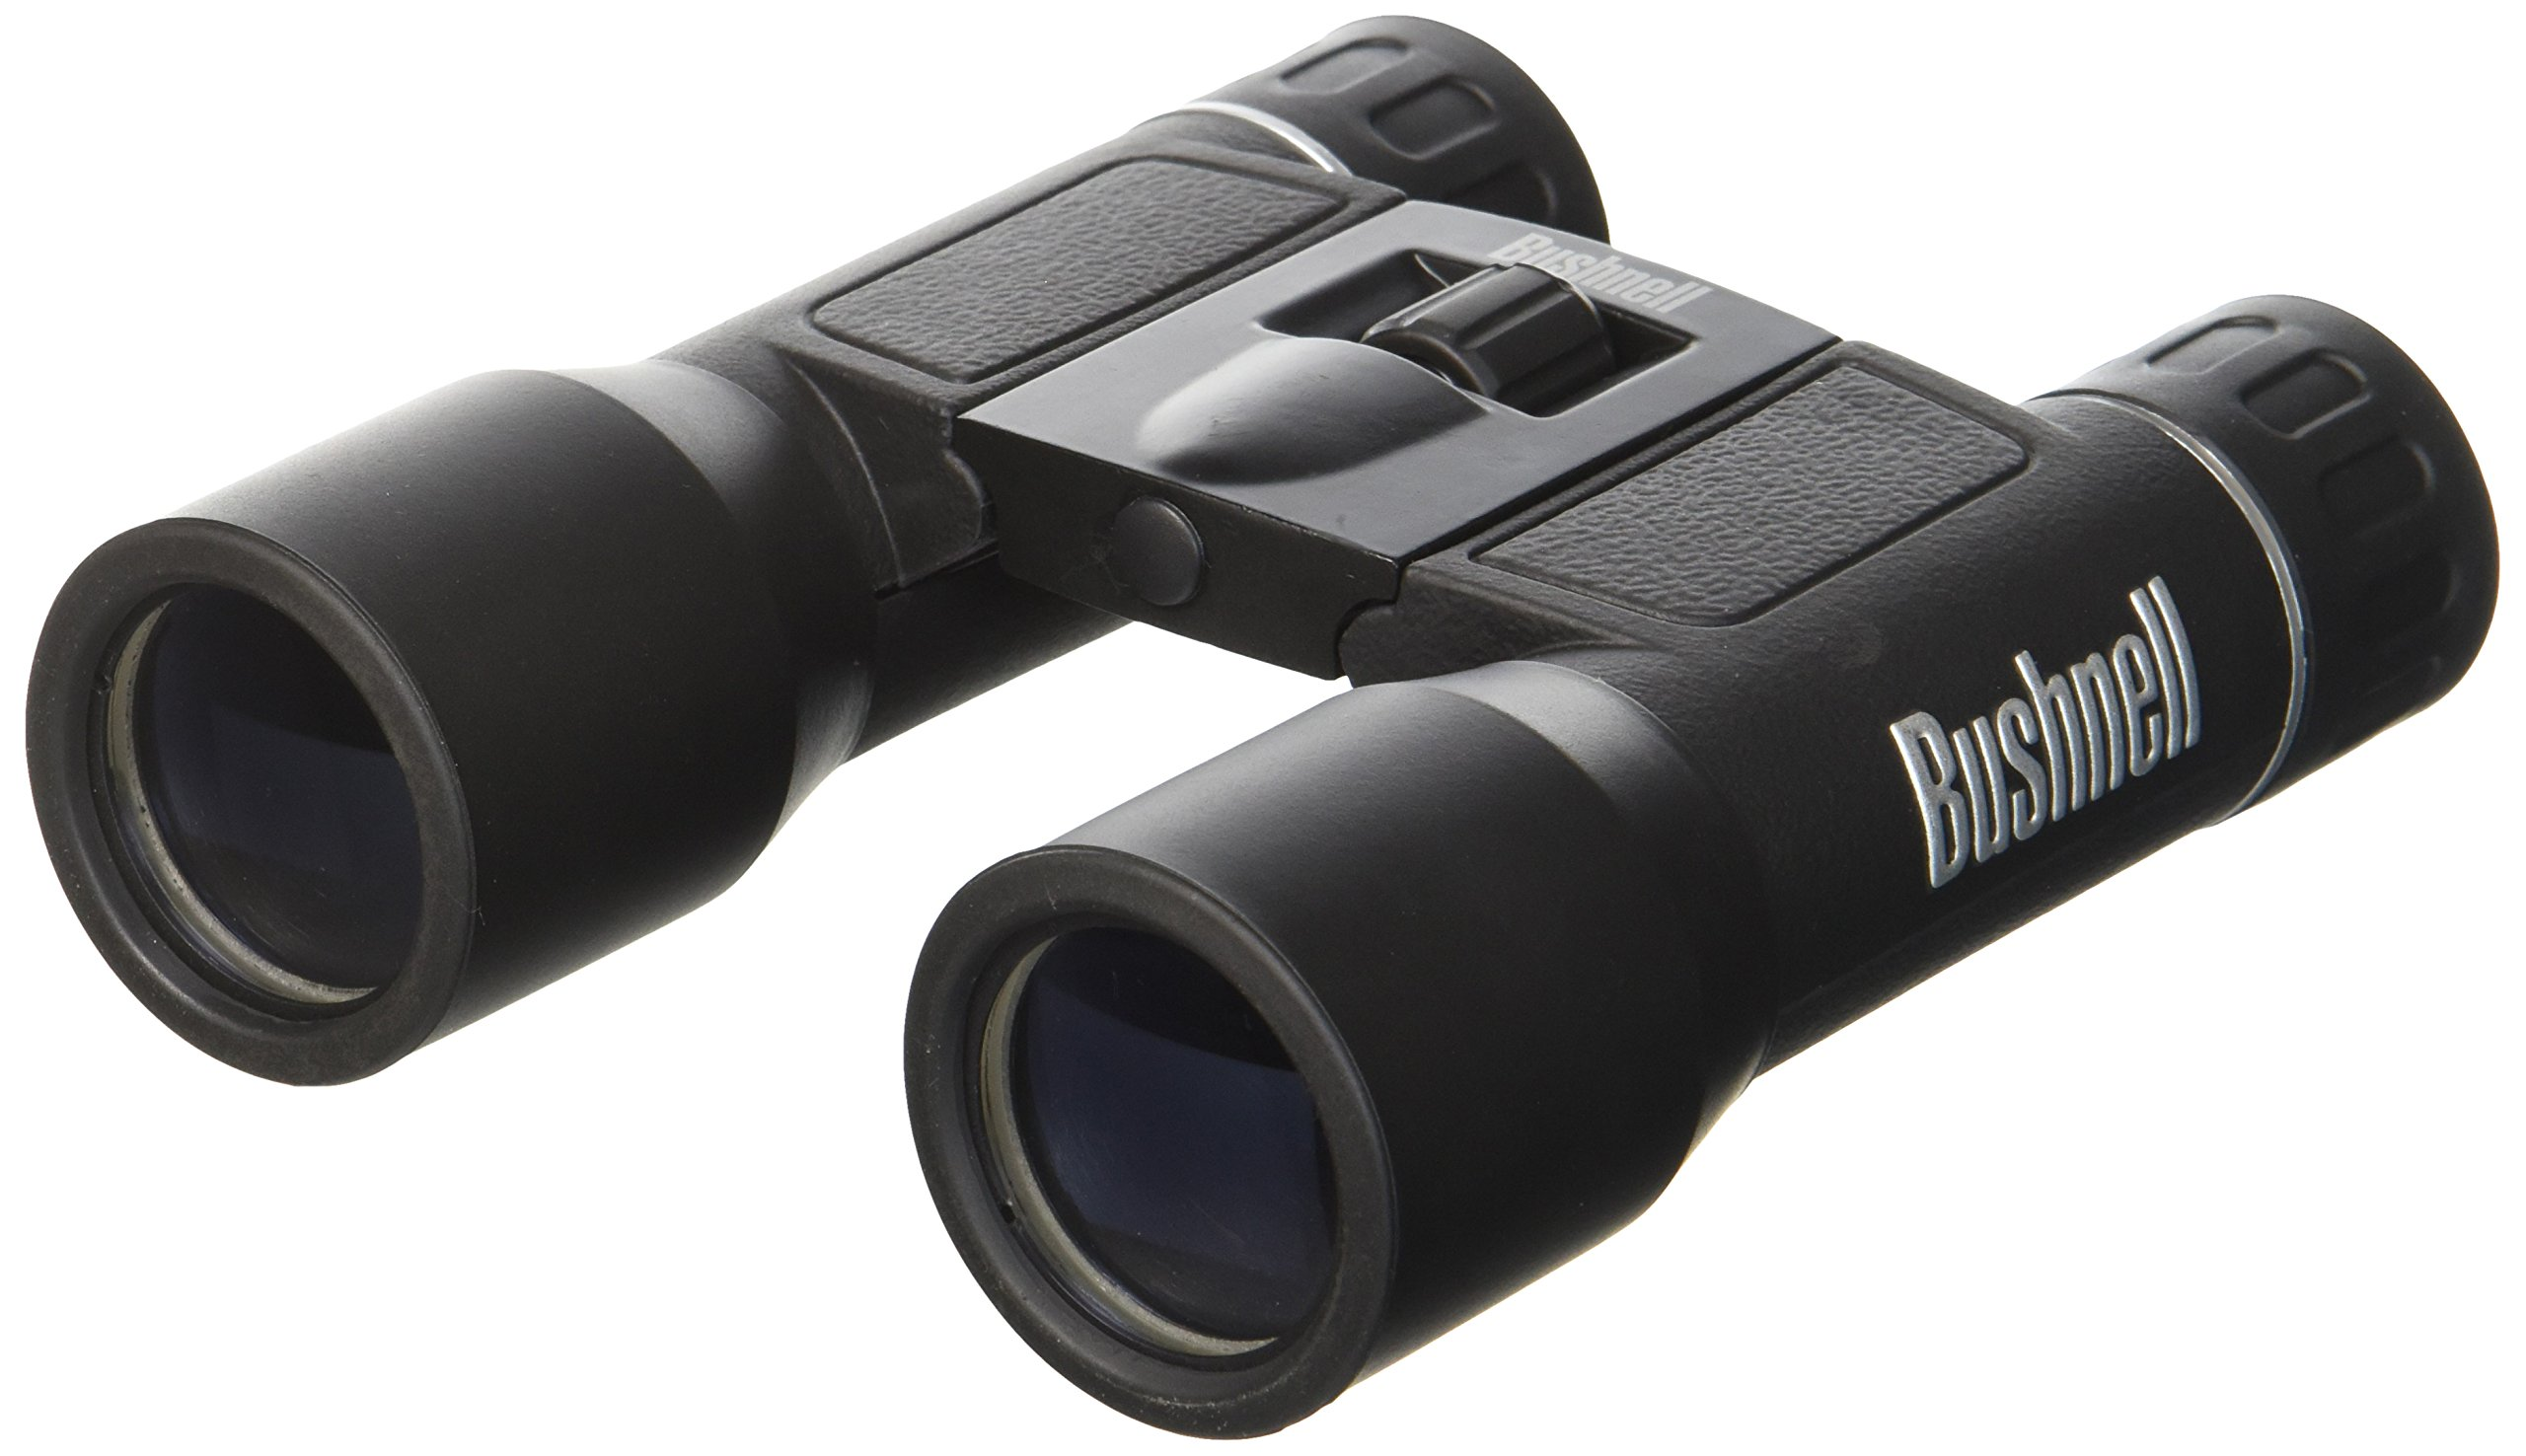 Amazon.com: Bushnell Powerview Compact Folding Roof Prism Binocular: VISTA:  Sports & Outdoors